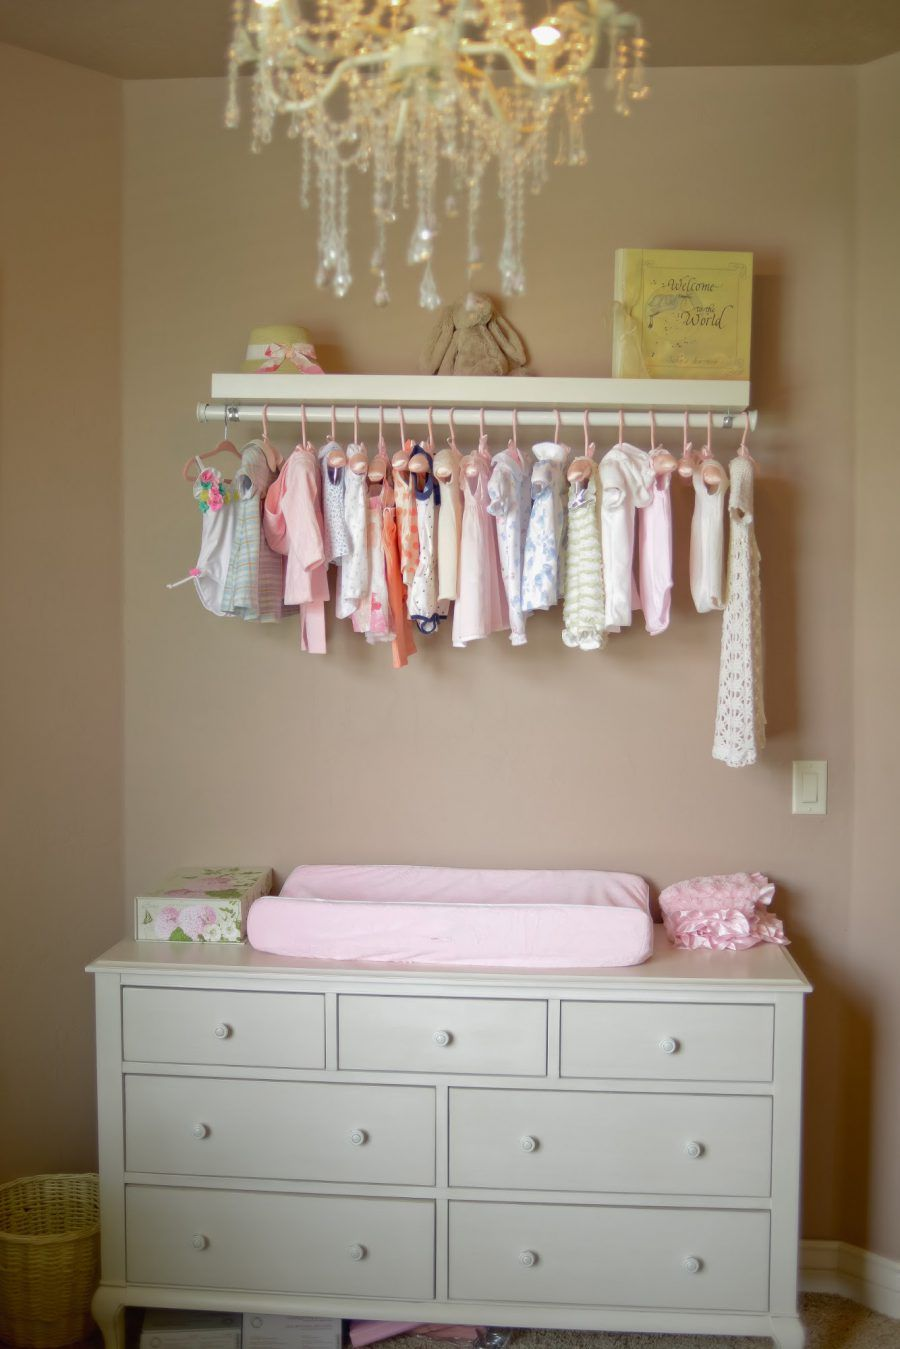 25 Best Baby Changing Table Interiorsherpa Baby Room Storage Baby Changing Tables Baby Nursery Closet